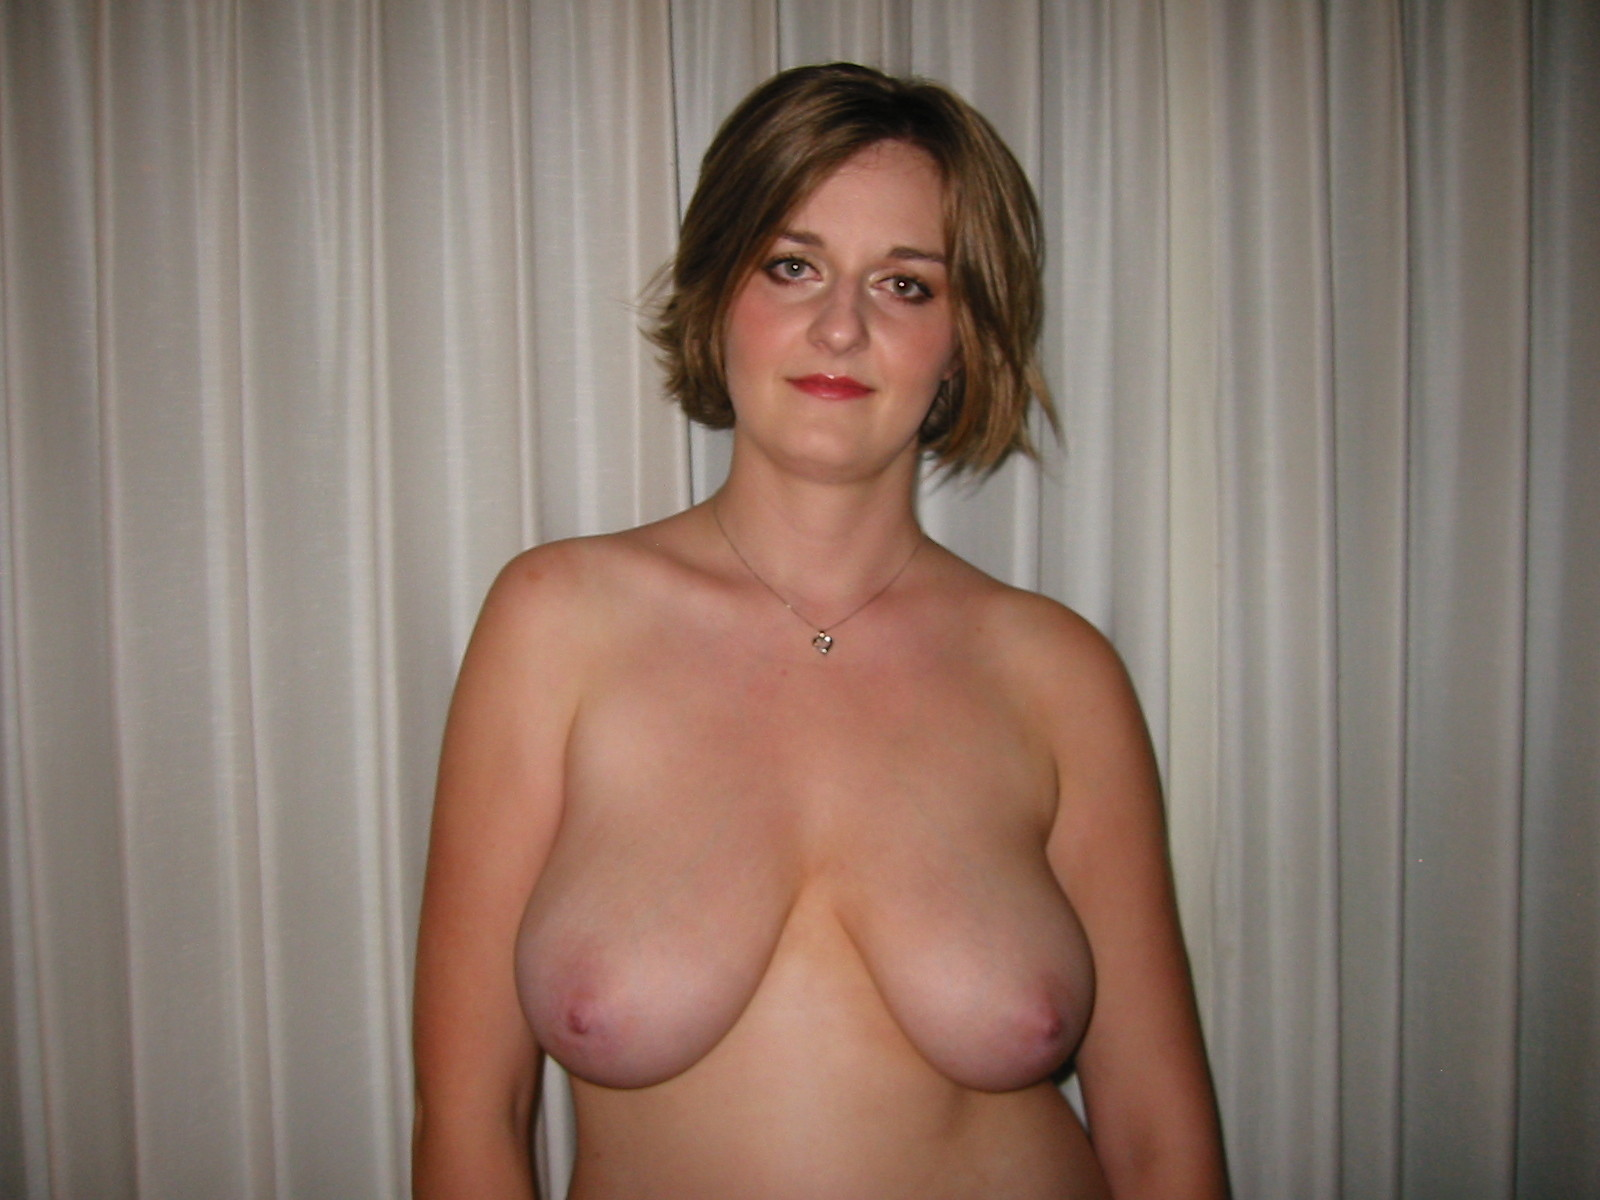 Amateur naked women big tits question interesting